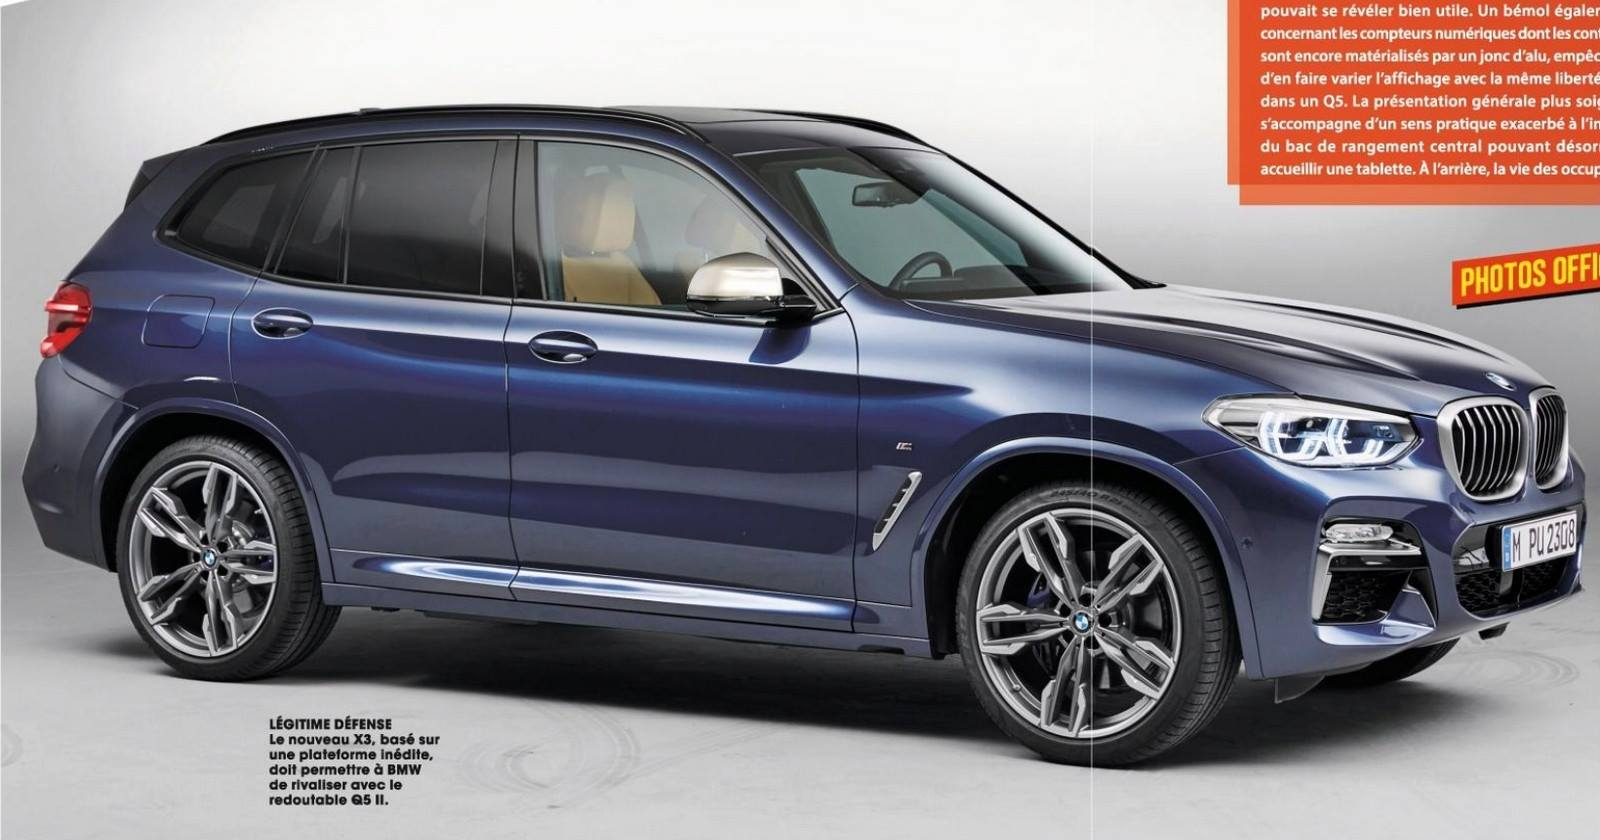 Published the first photos of the new crossover BMW